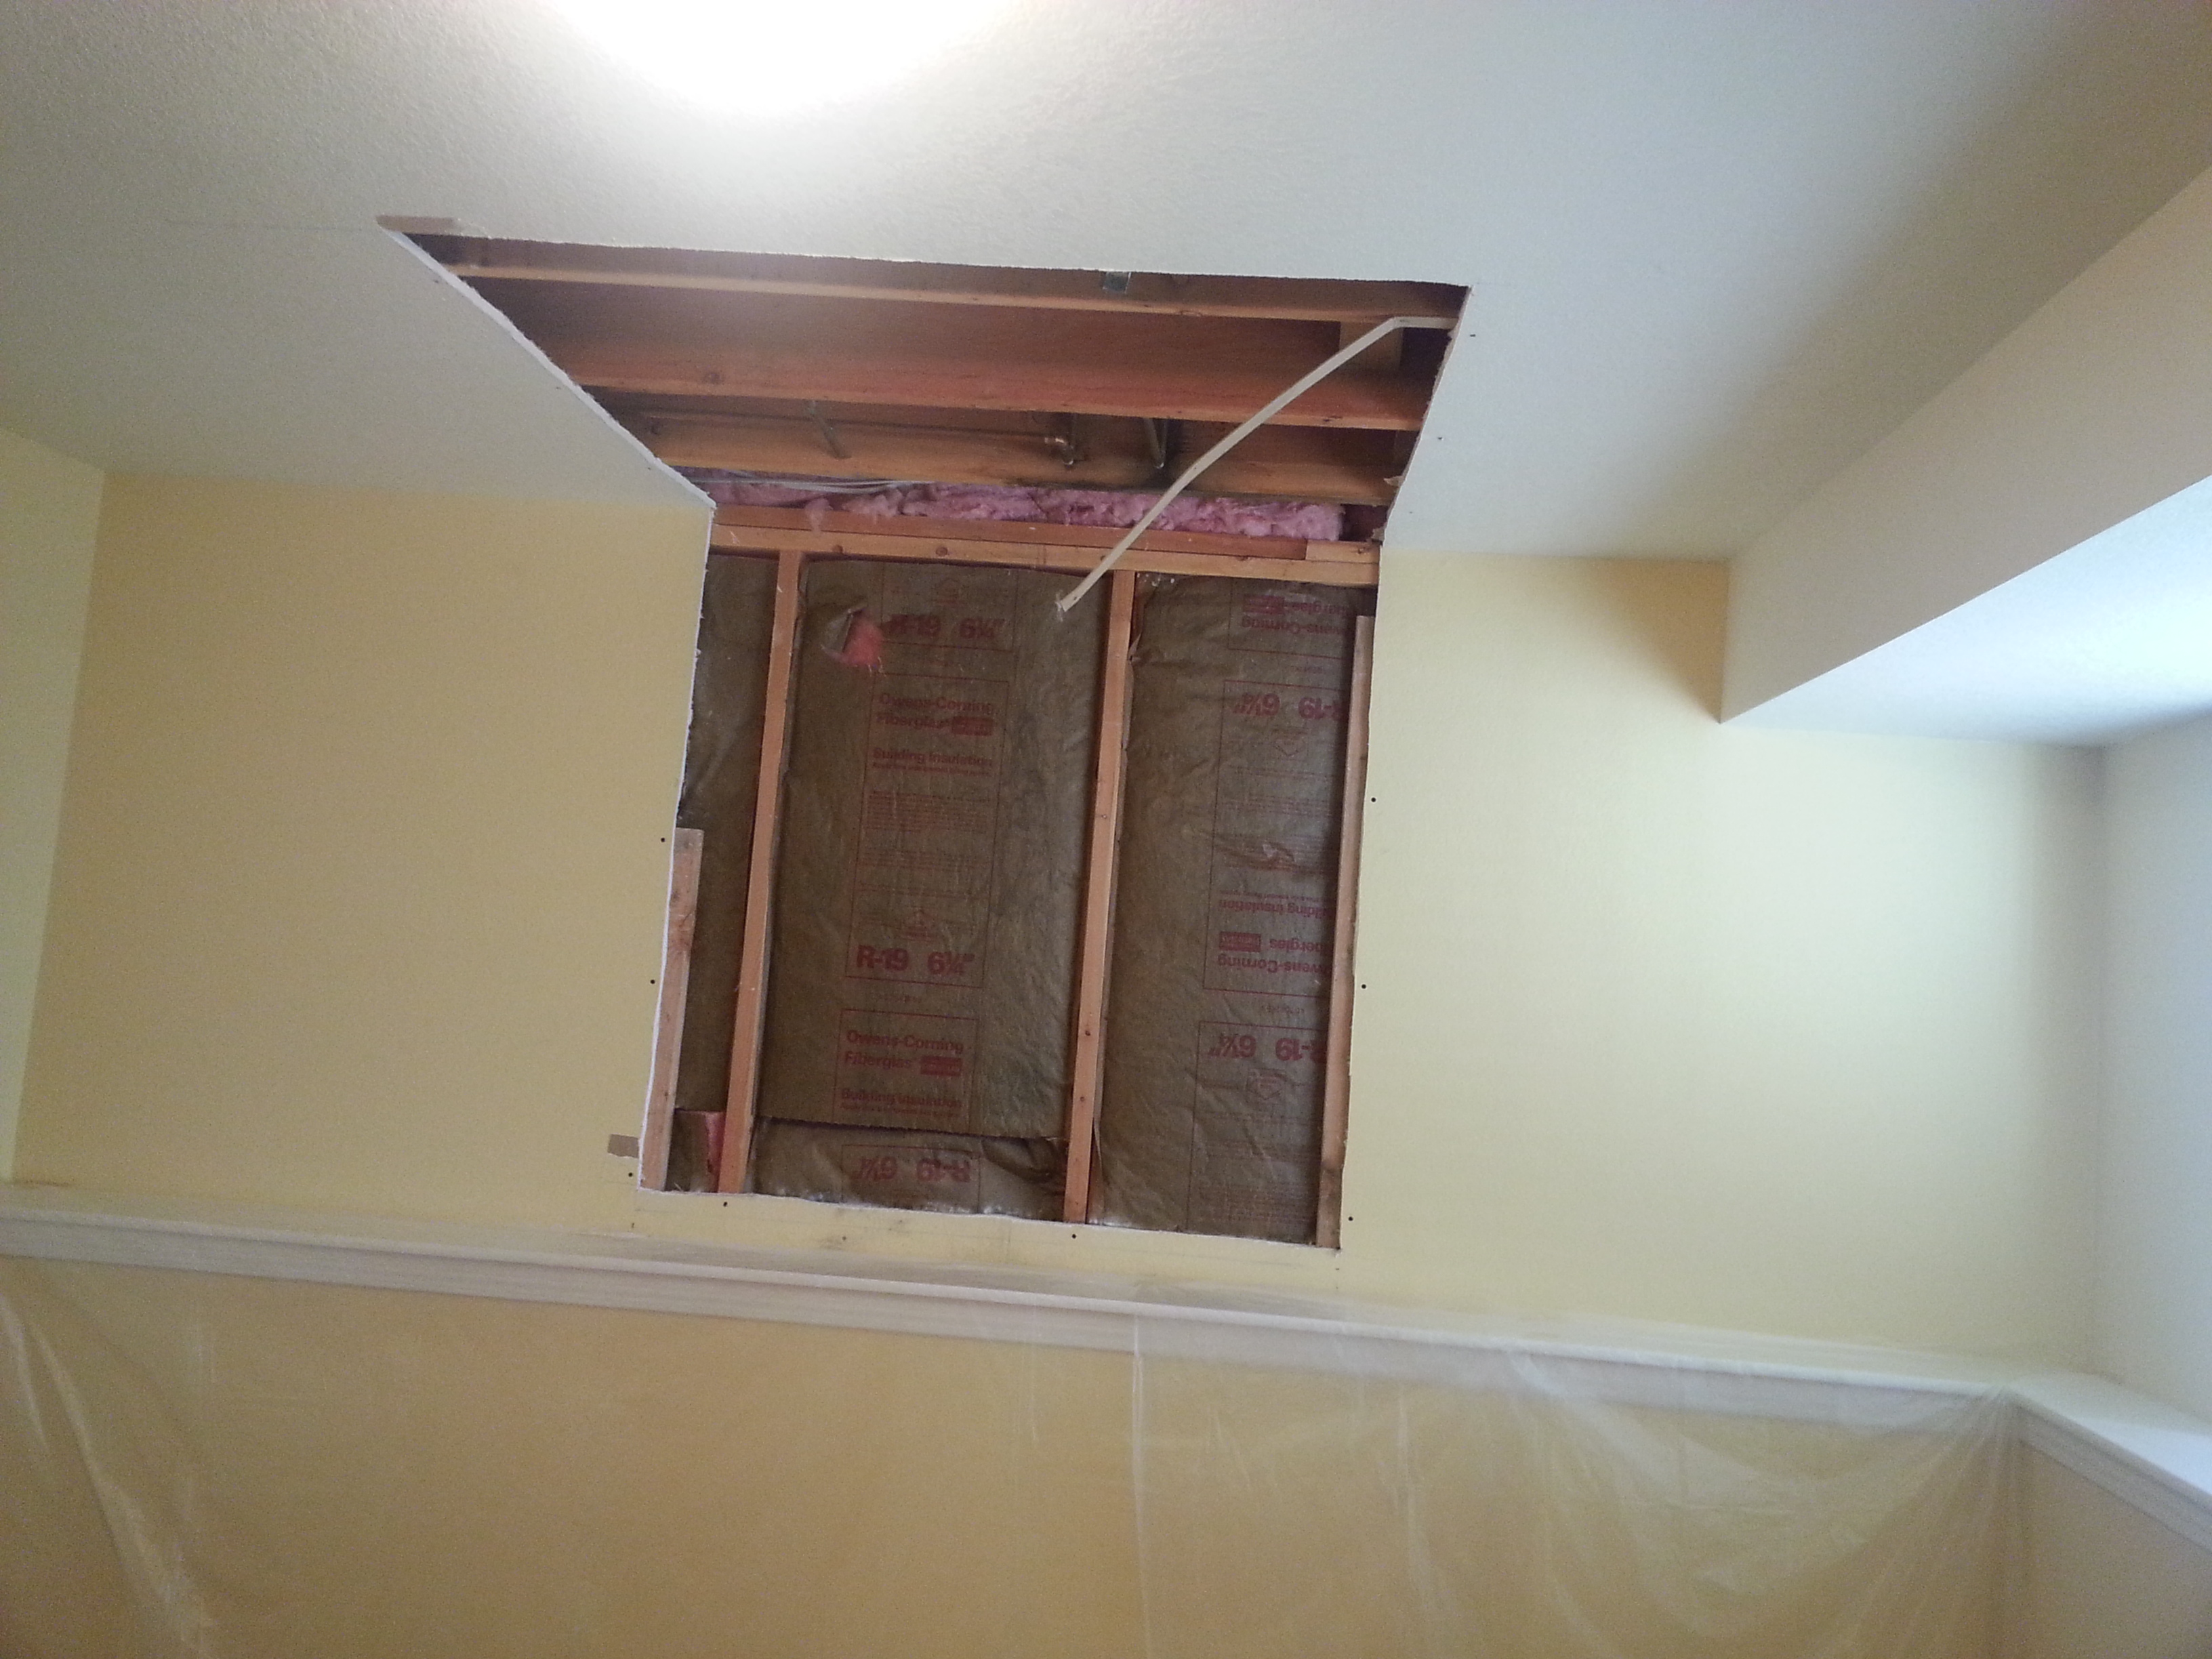 s uneven here imgur image com how drywall description joint ceiling to enter repair questions between i handle home stack